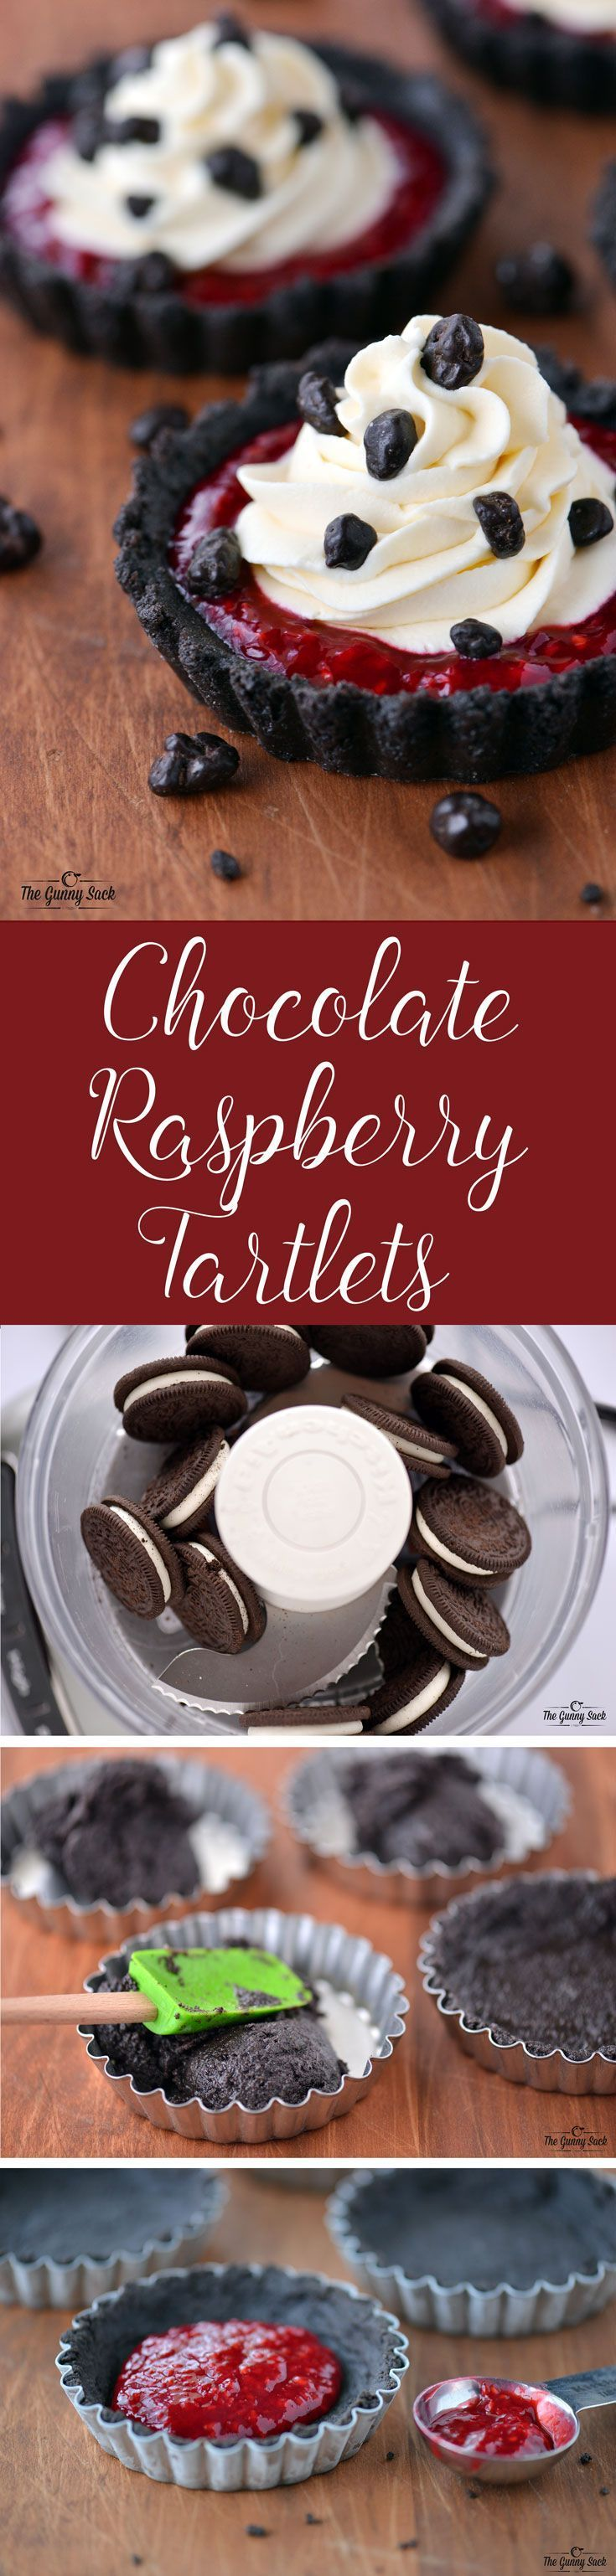 All Food and Drink: Chocolate Raspberry Tartlets - The Gunny Sack